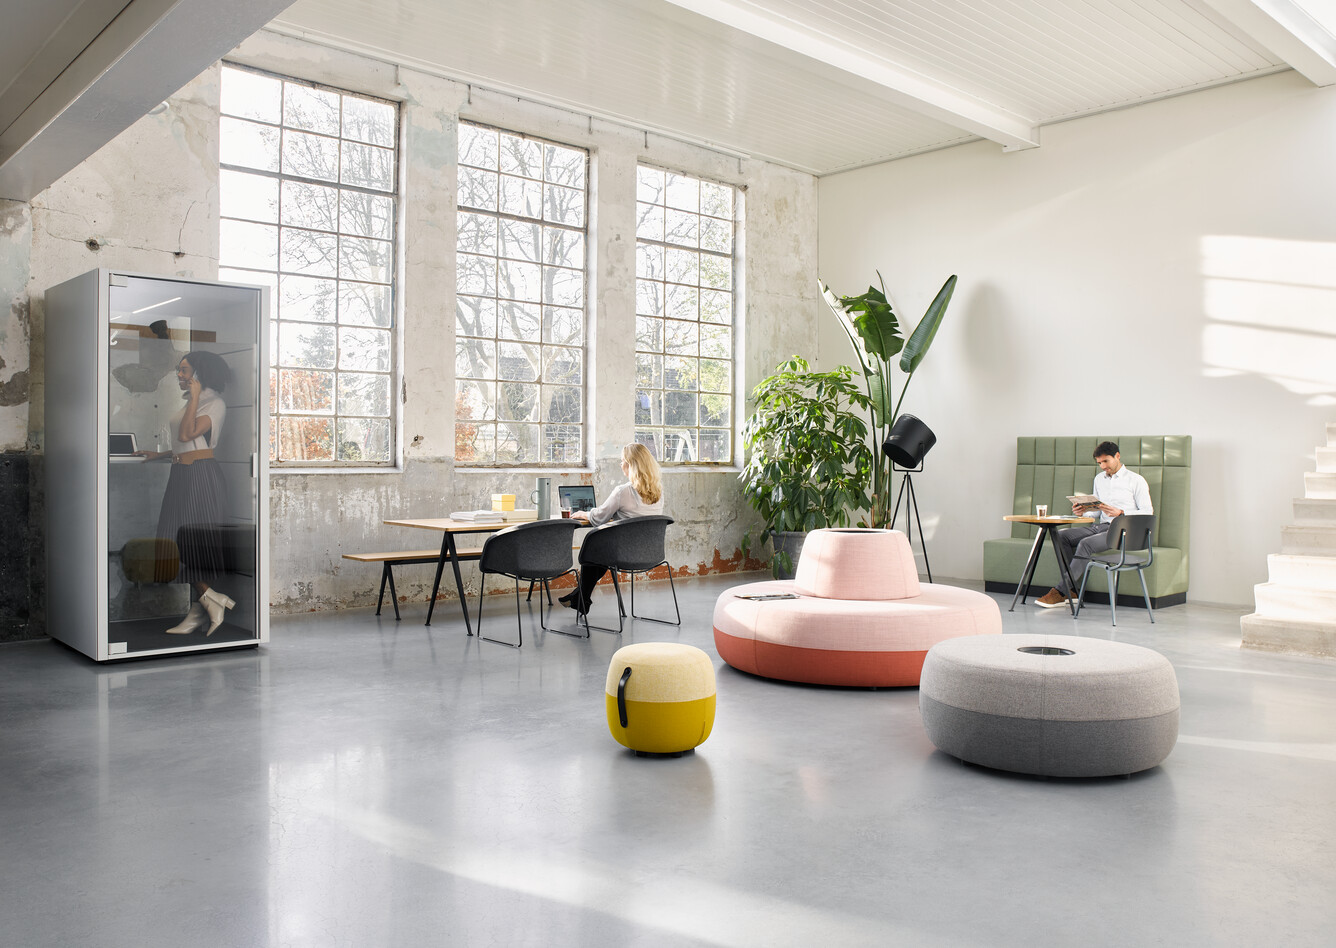 Ahrend Recharge poufs upholstered in pink yellow and grey with Qabin and Pyramid with Well armchairs and models in a Hybrid working community setting